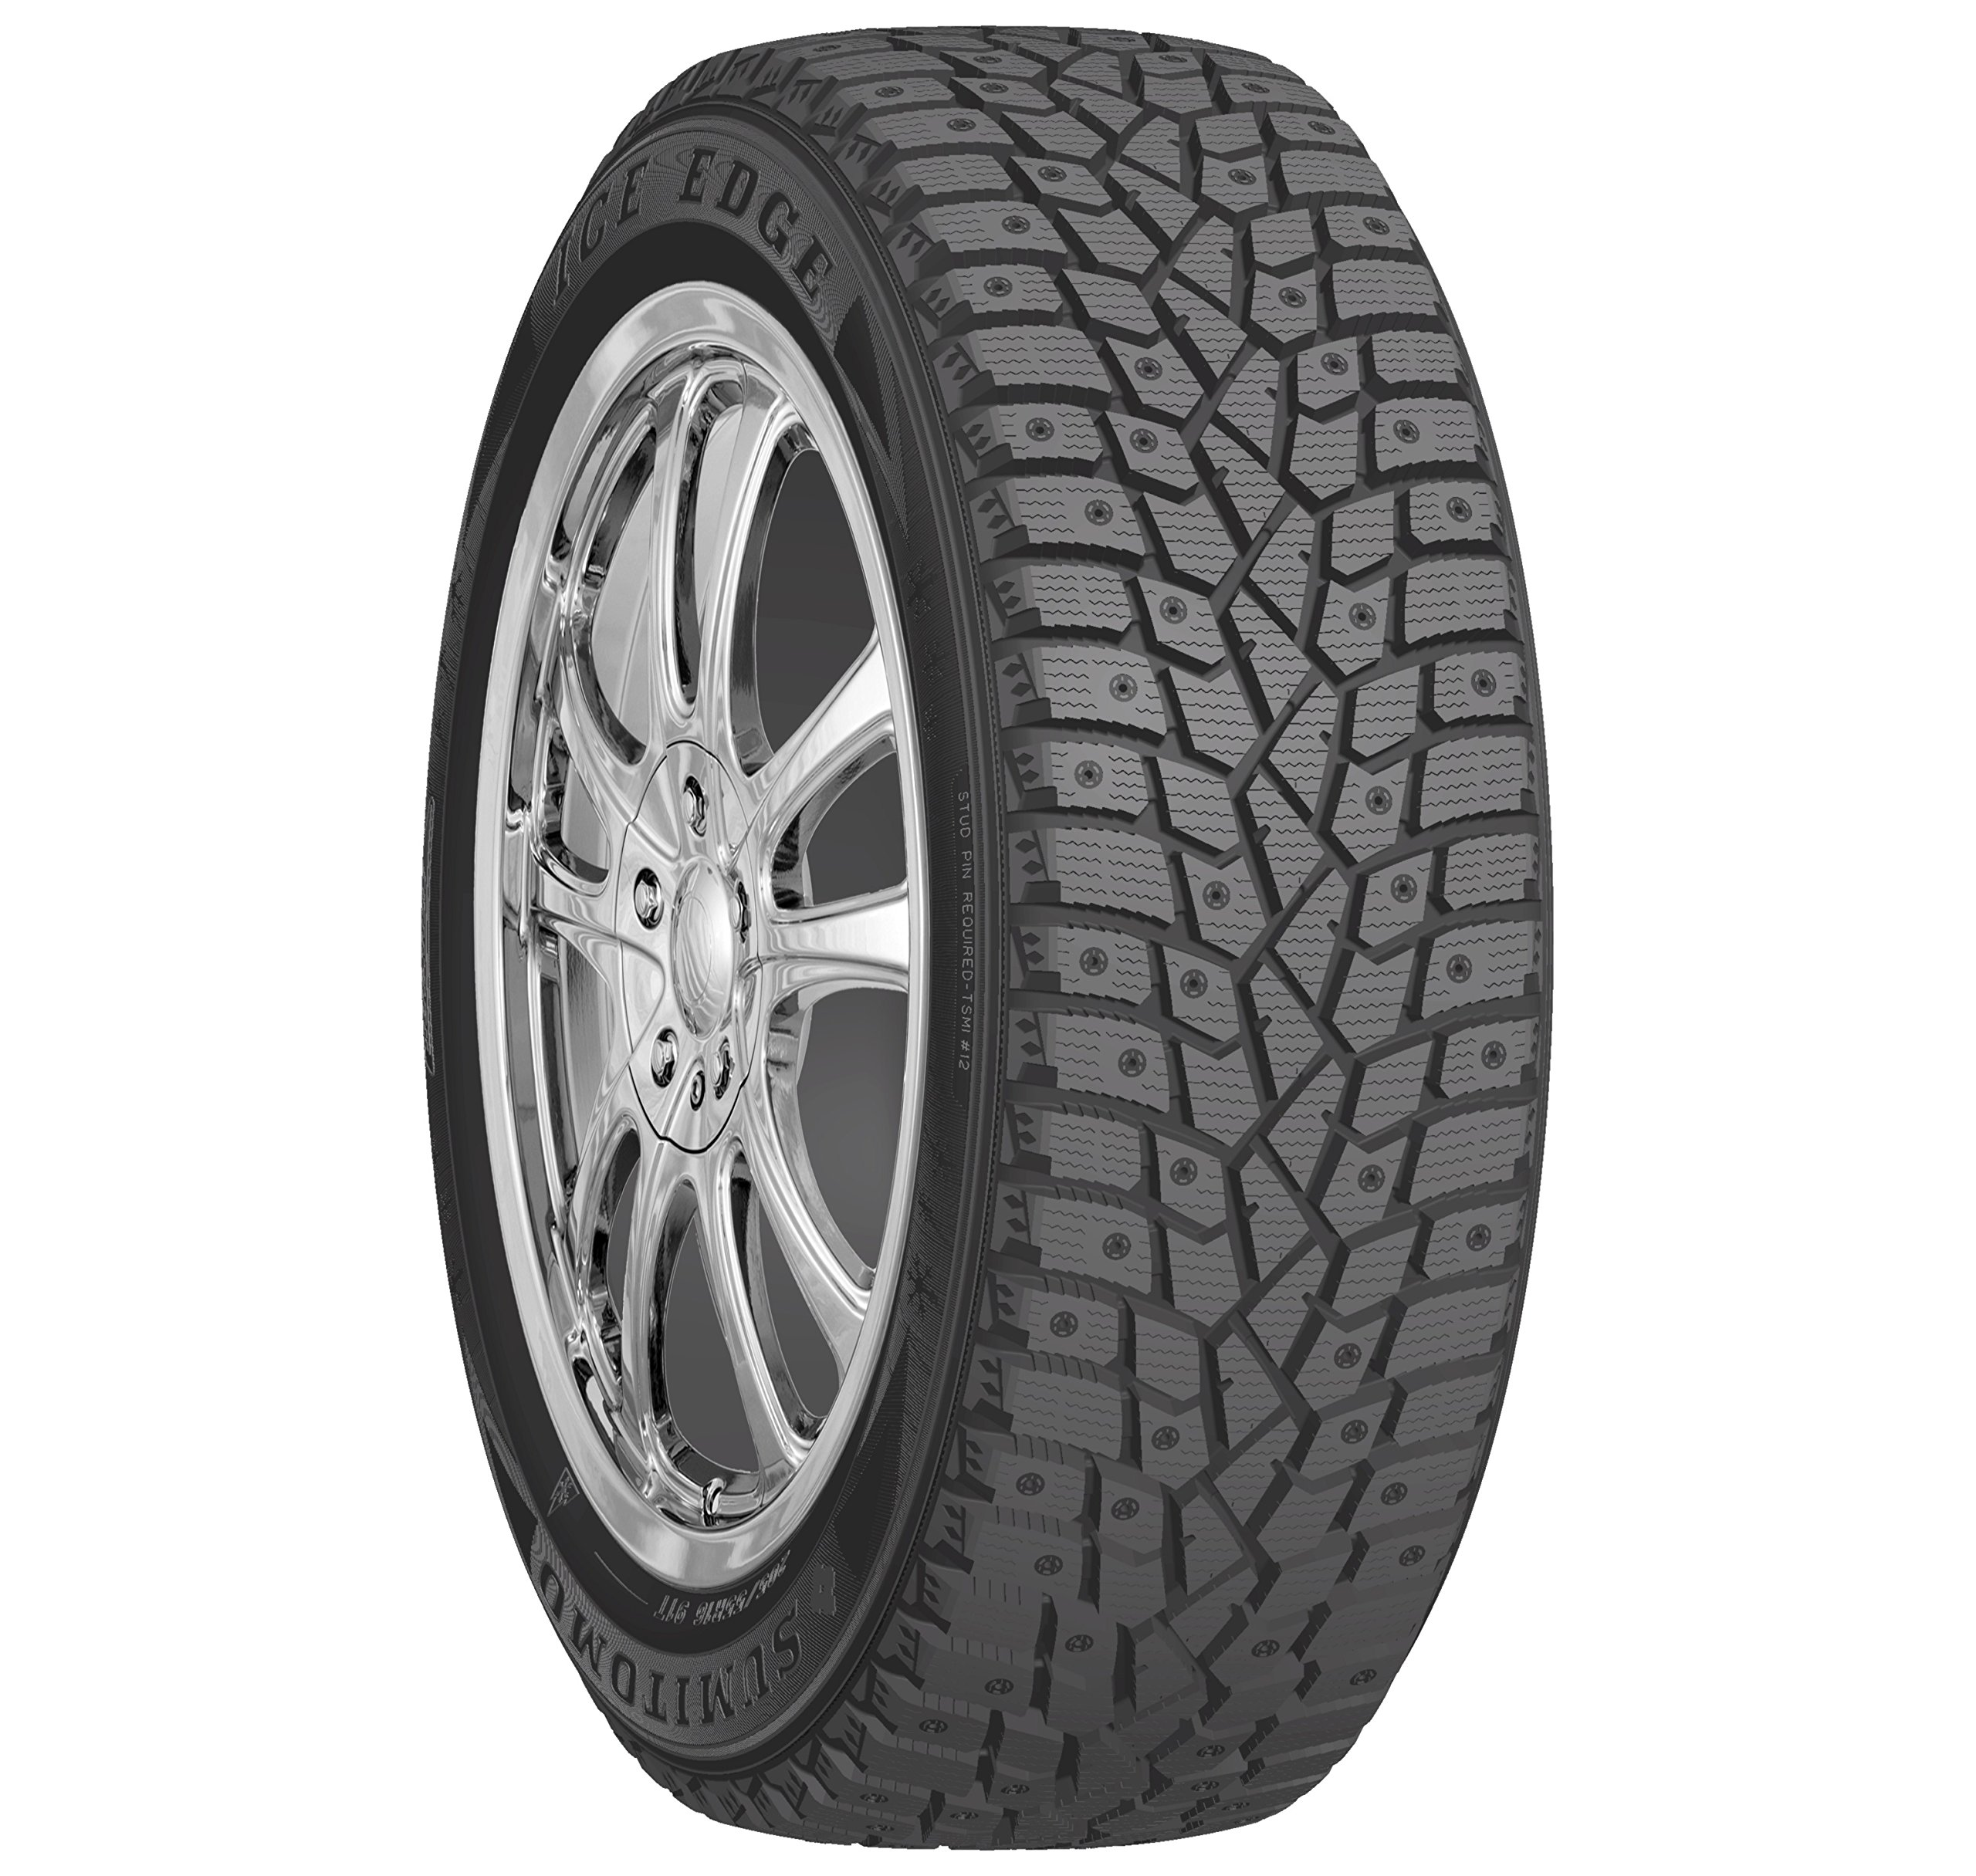 Sumitomo Ice Edge Snow Radial Tire-215/60R16 95T by SUMITOMO